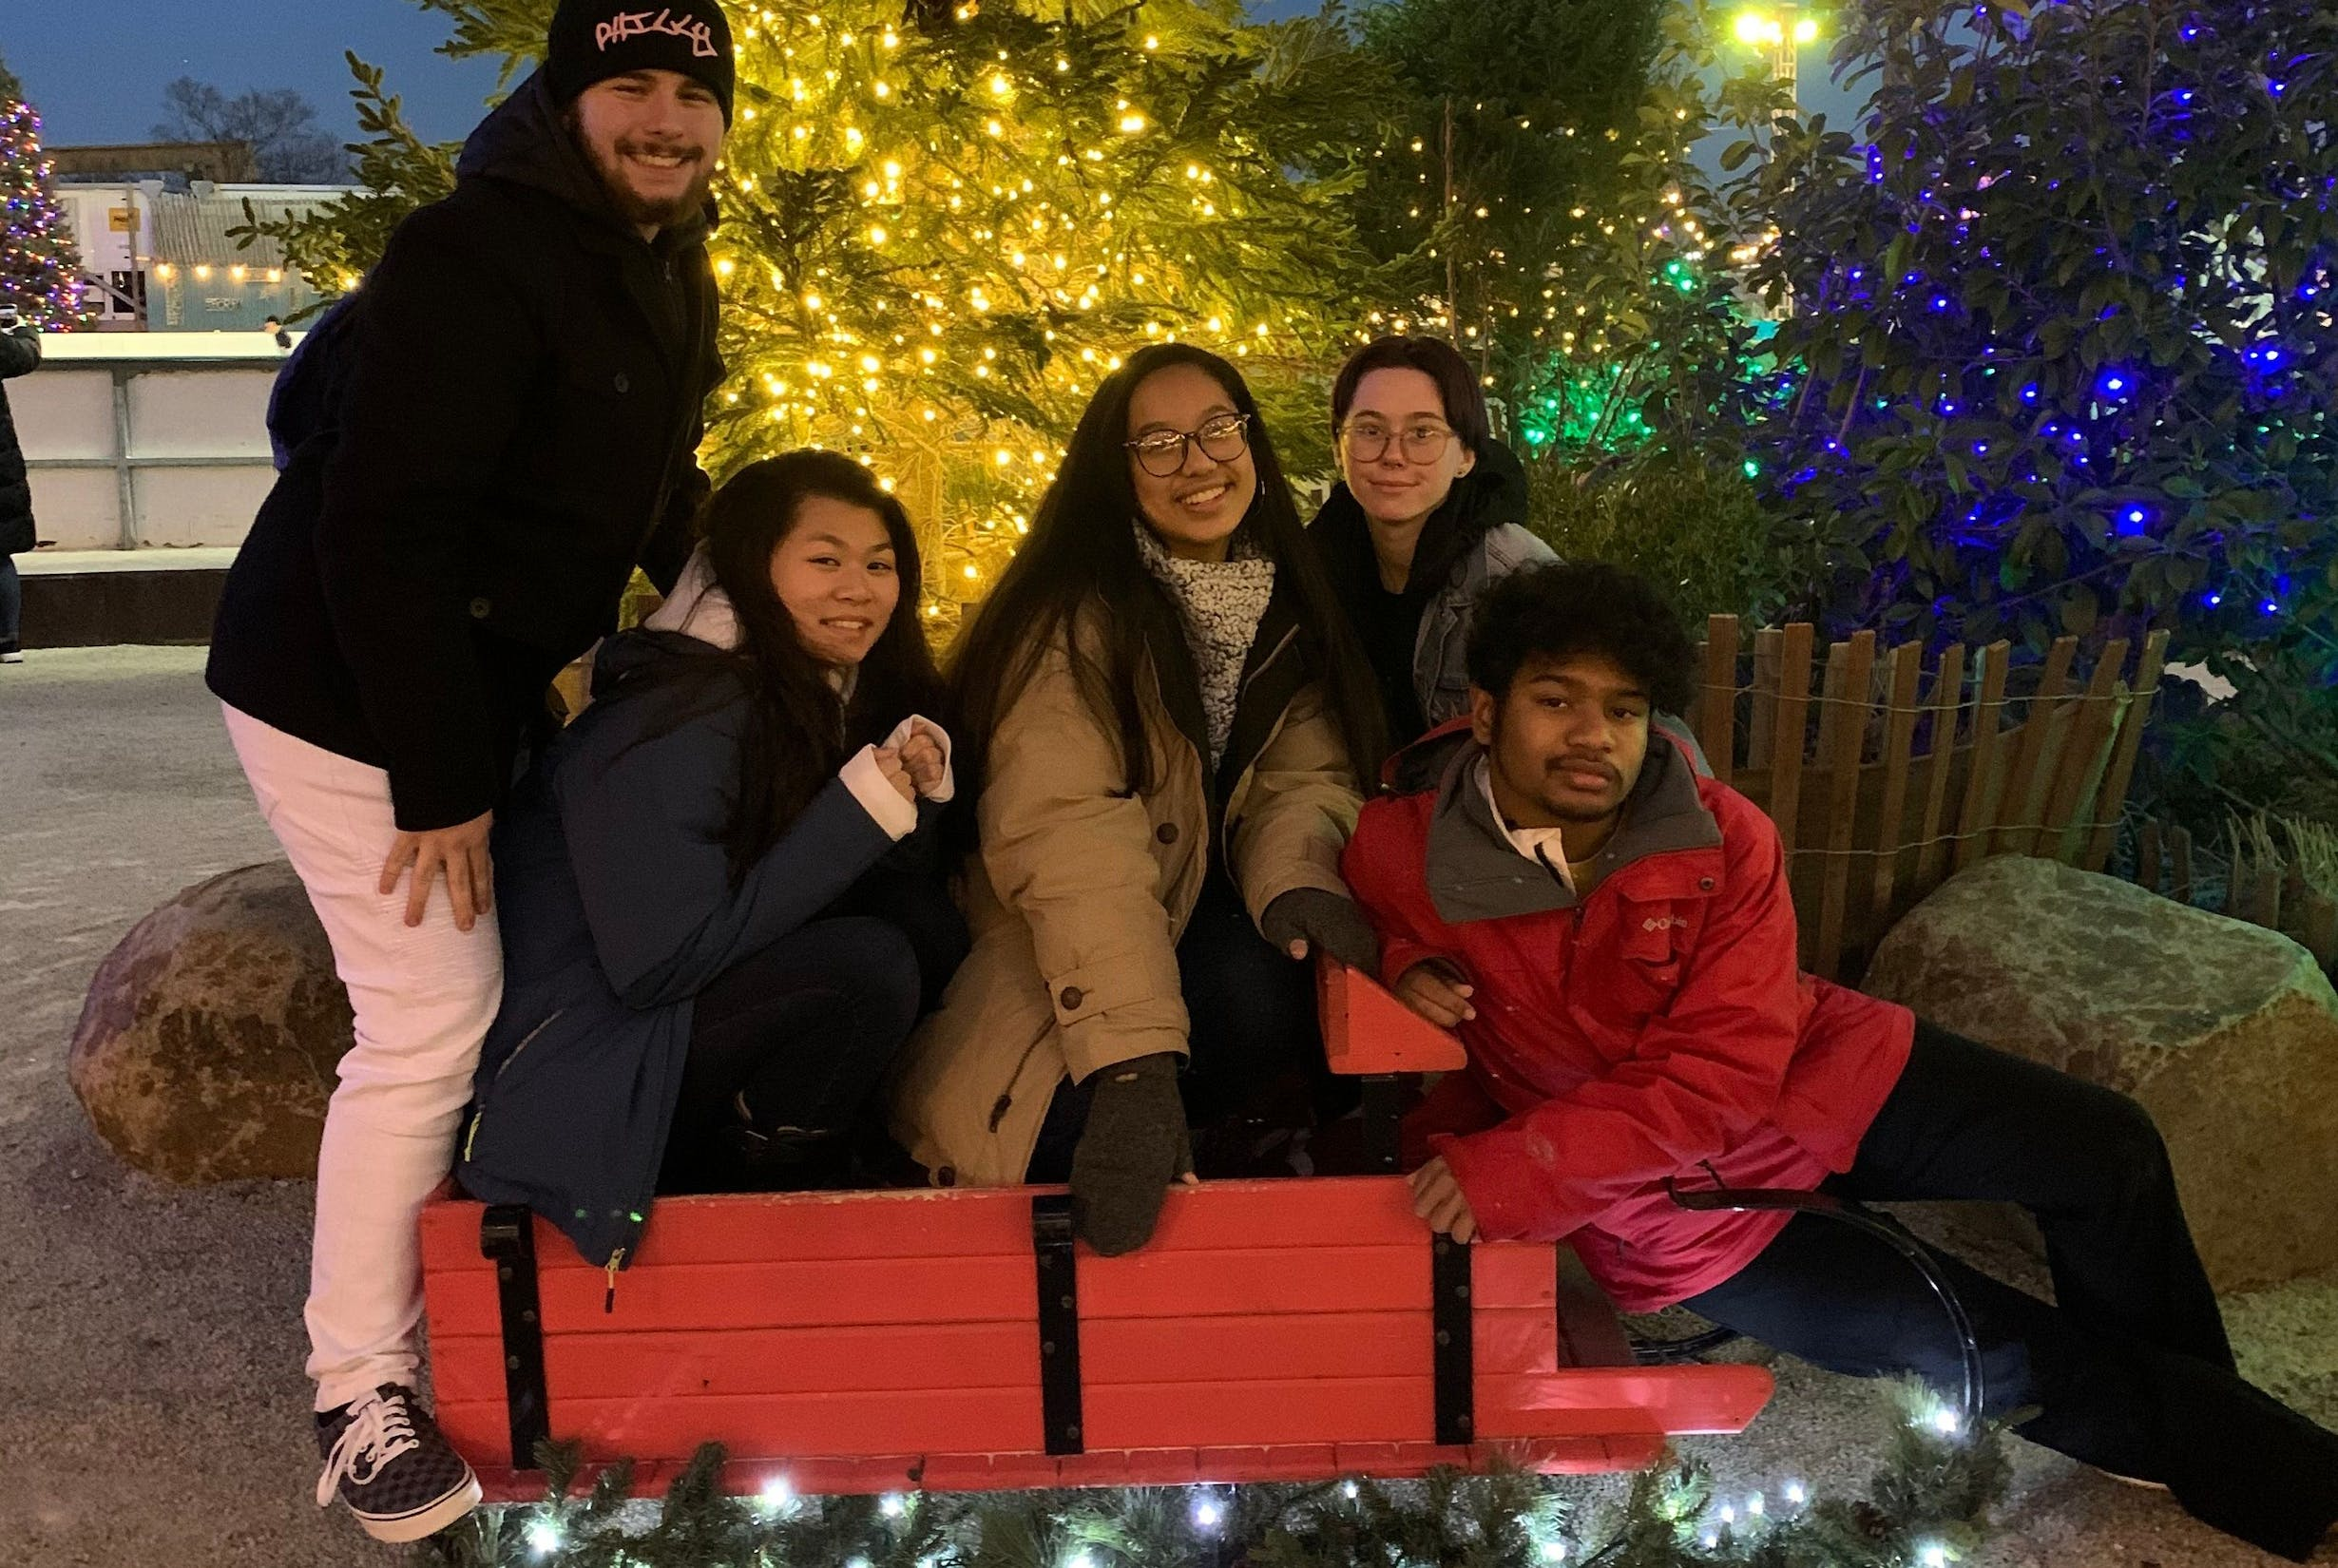 Three female students and two male students posing with a sled in front of a Christmas tree